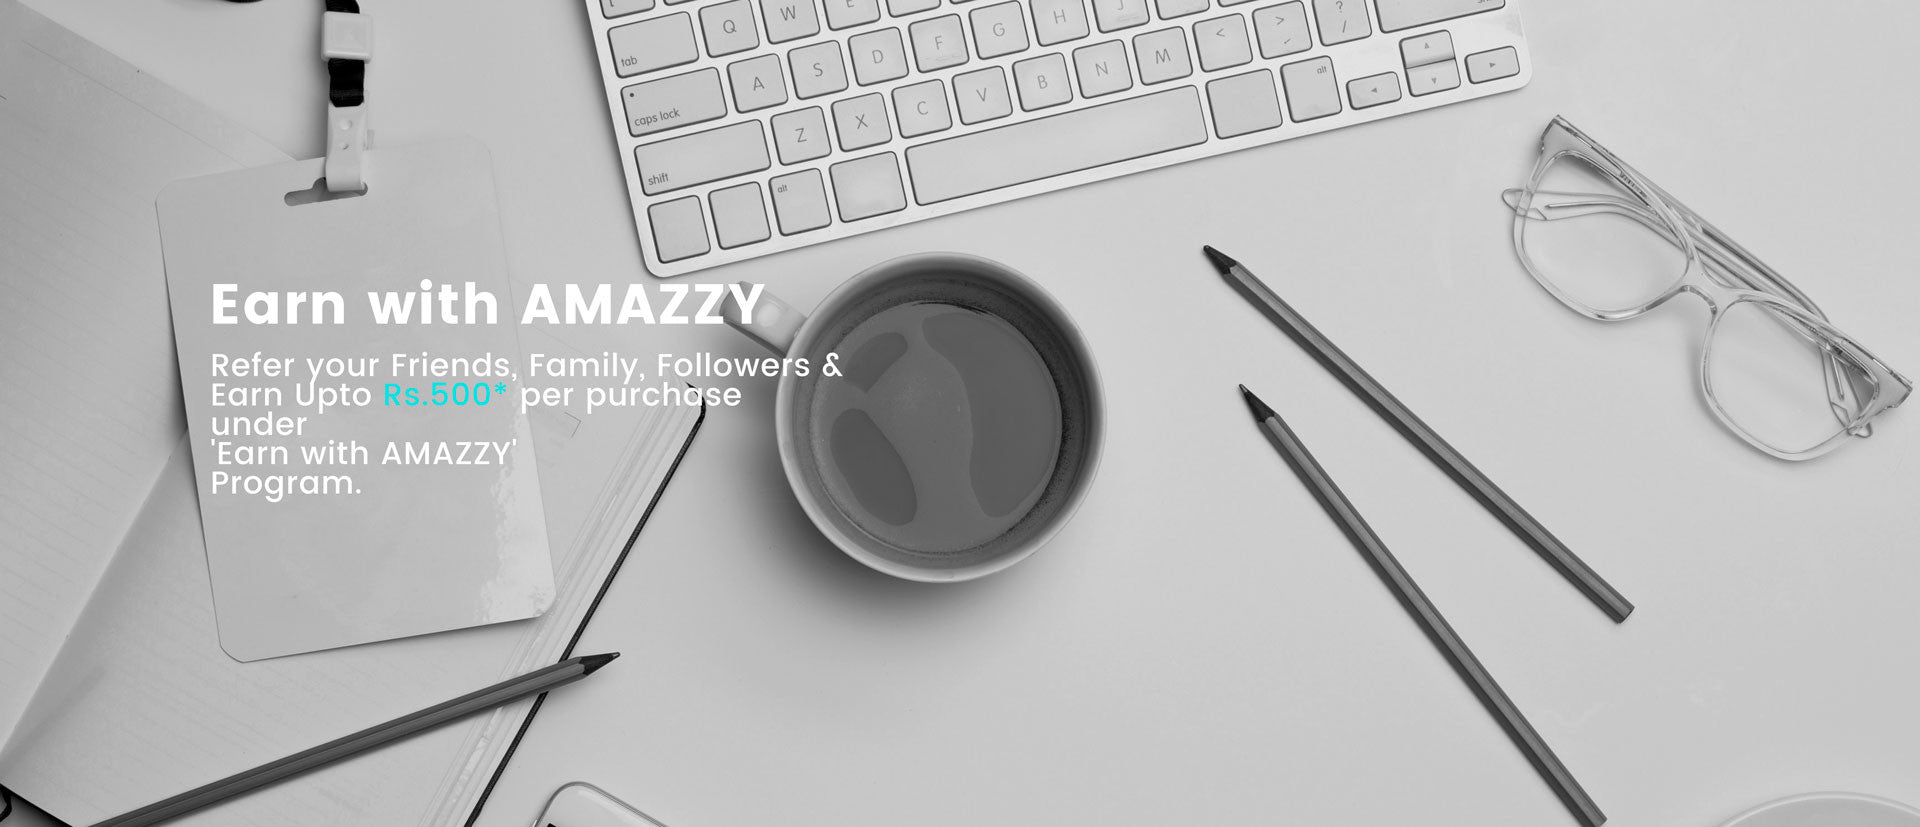 Earn with AMAZZY home page banner